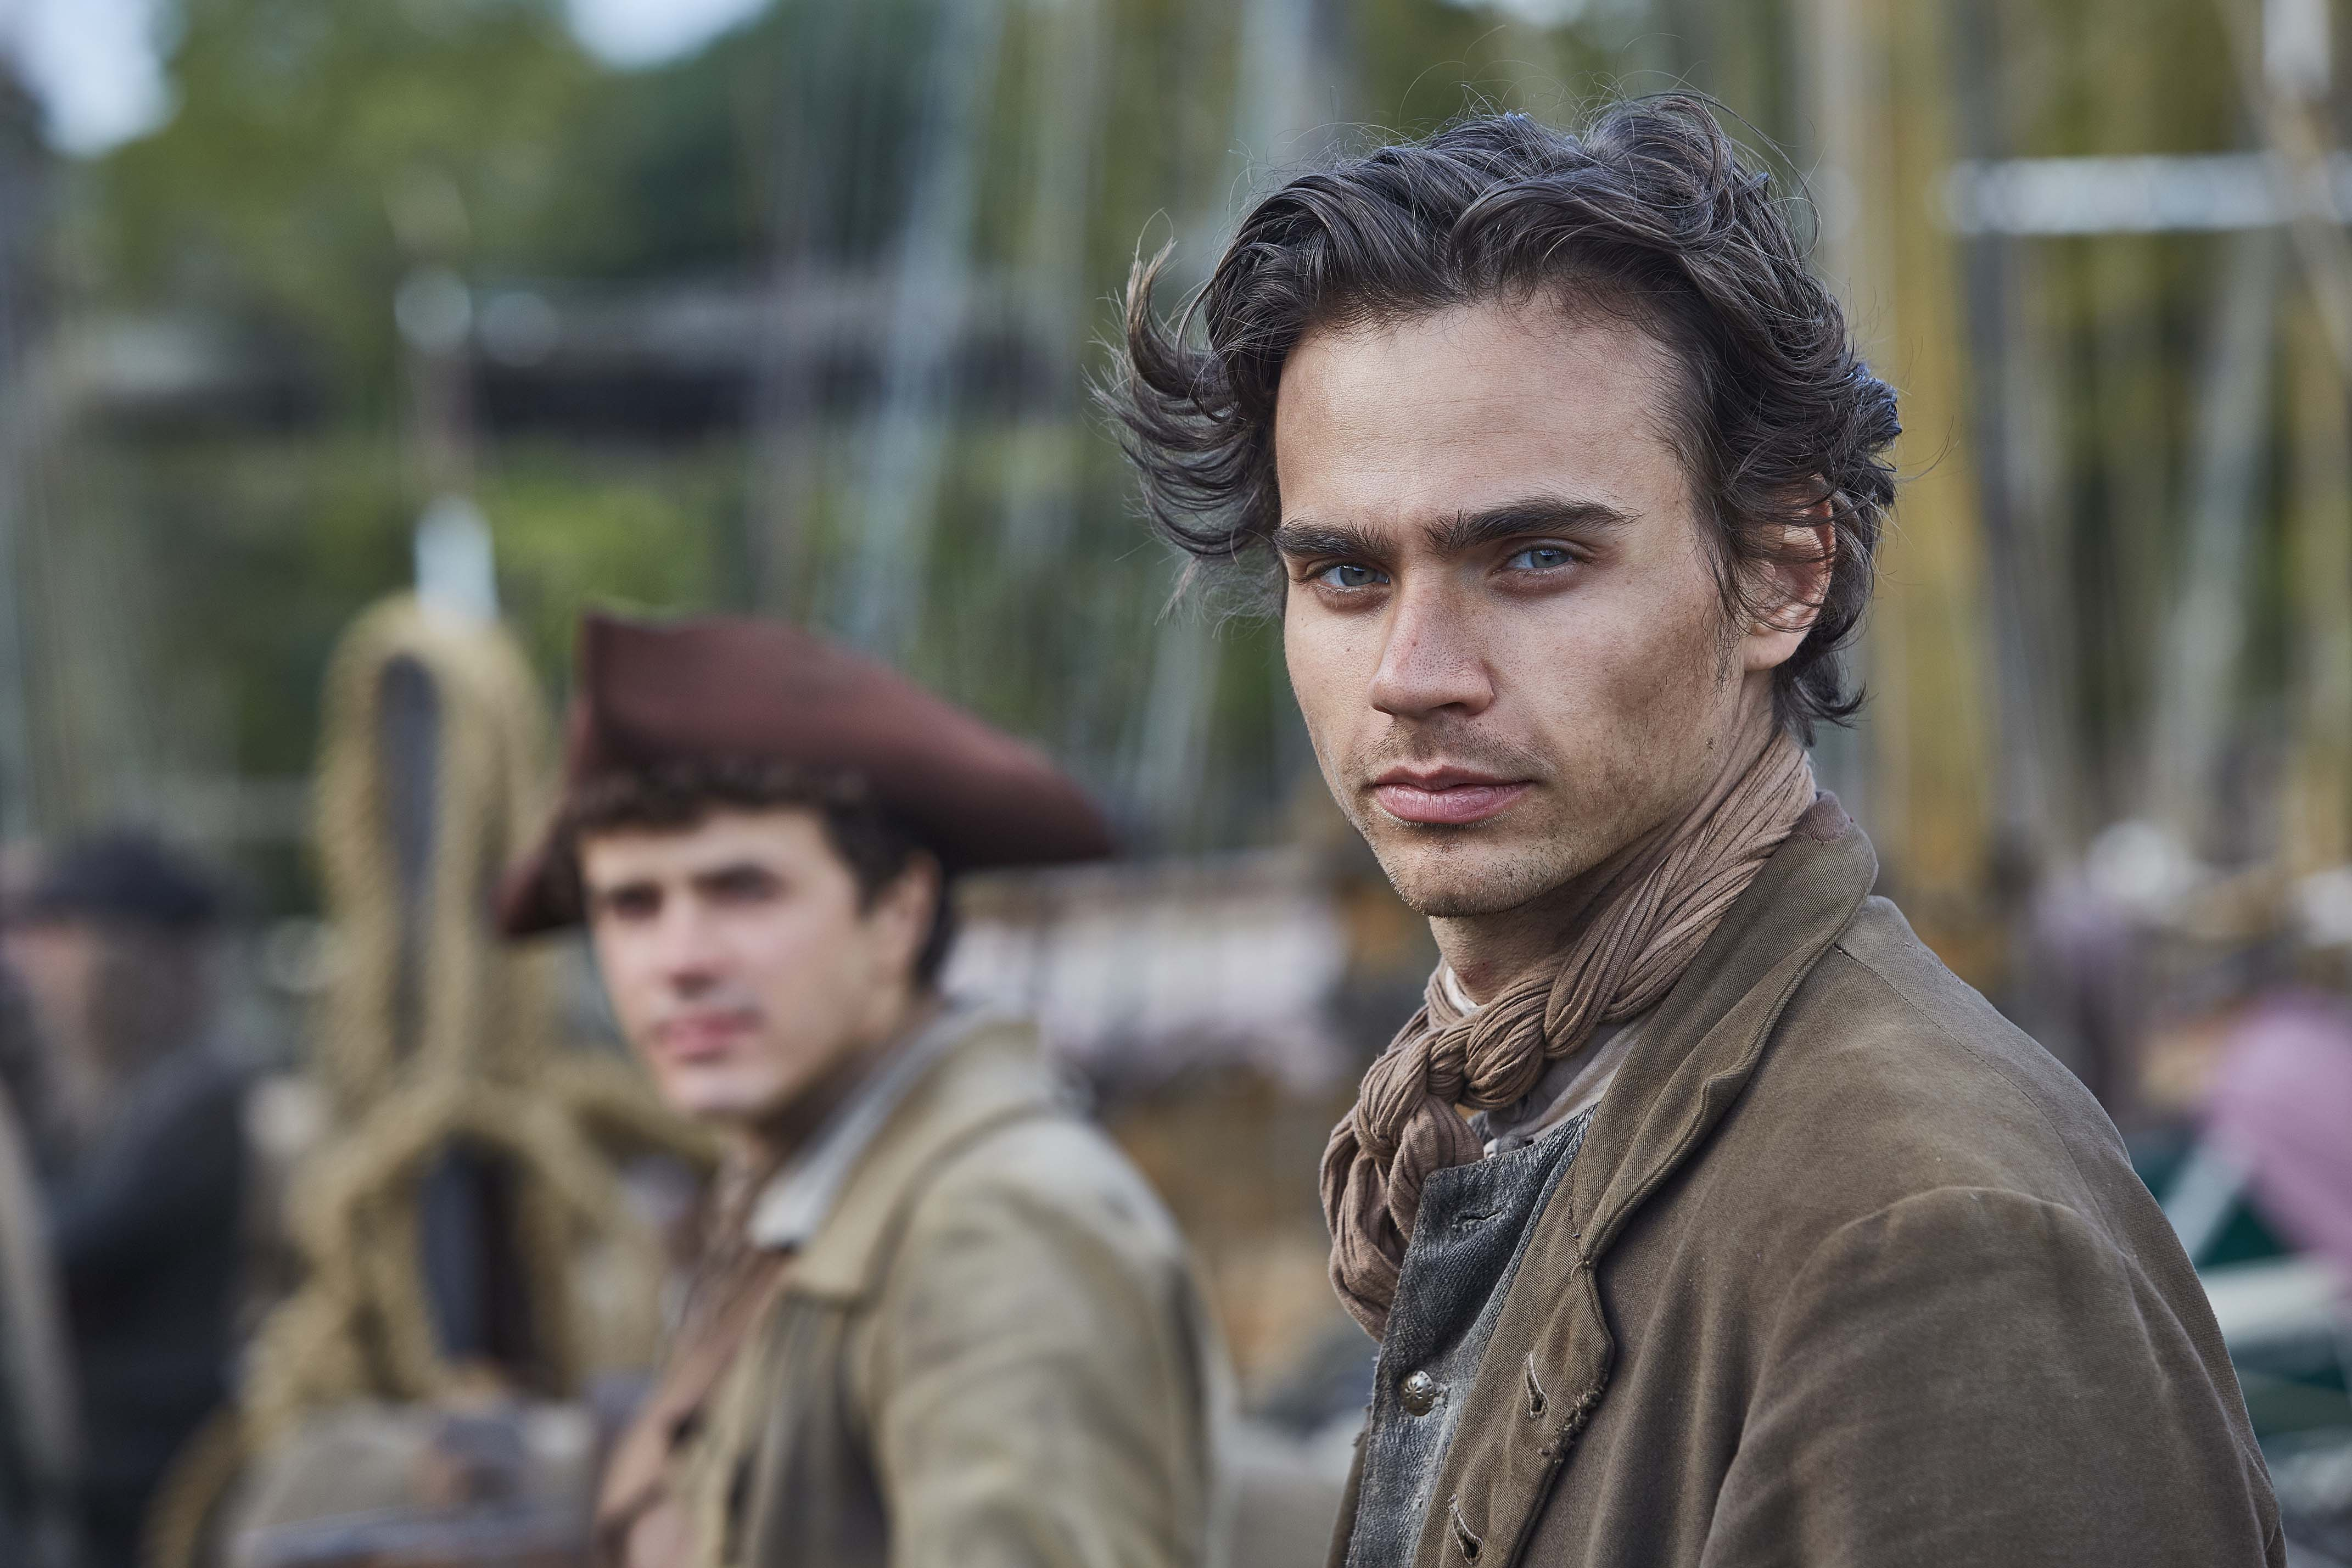 WARNING: Embargoed for publication until 00:00:01 on 05/06/2018 - Programme Name: Poldark - Series 4 - TX: n/a - Episode: Poldark S4 - EP1 (No. 1) - Picture Shows: ***EMBARGOED TILL 5TH JUNE*** Sam Carne (TOM YORK), Drake Carne (HARRY RICHARDSON) - (C) Mammoth Screen - Photographer: Mike Hogan